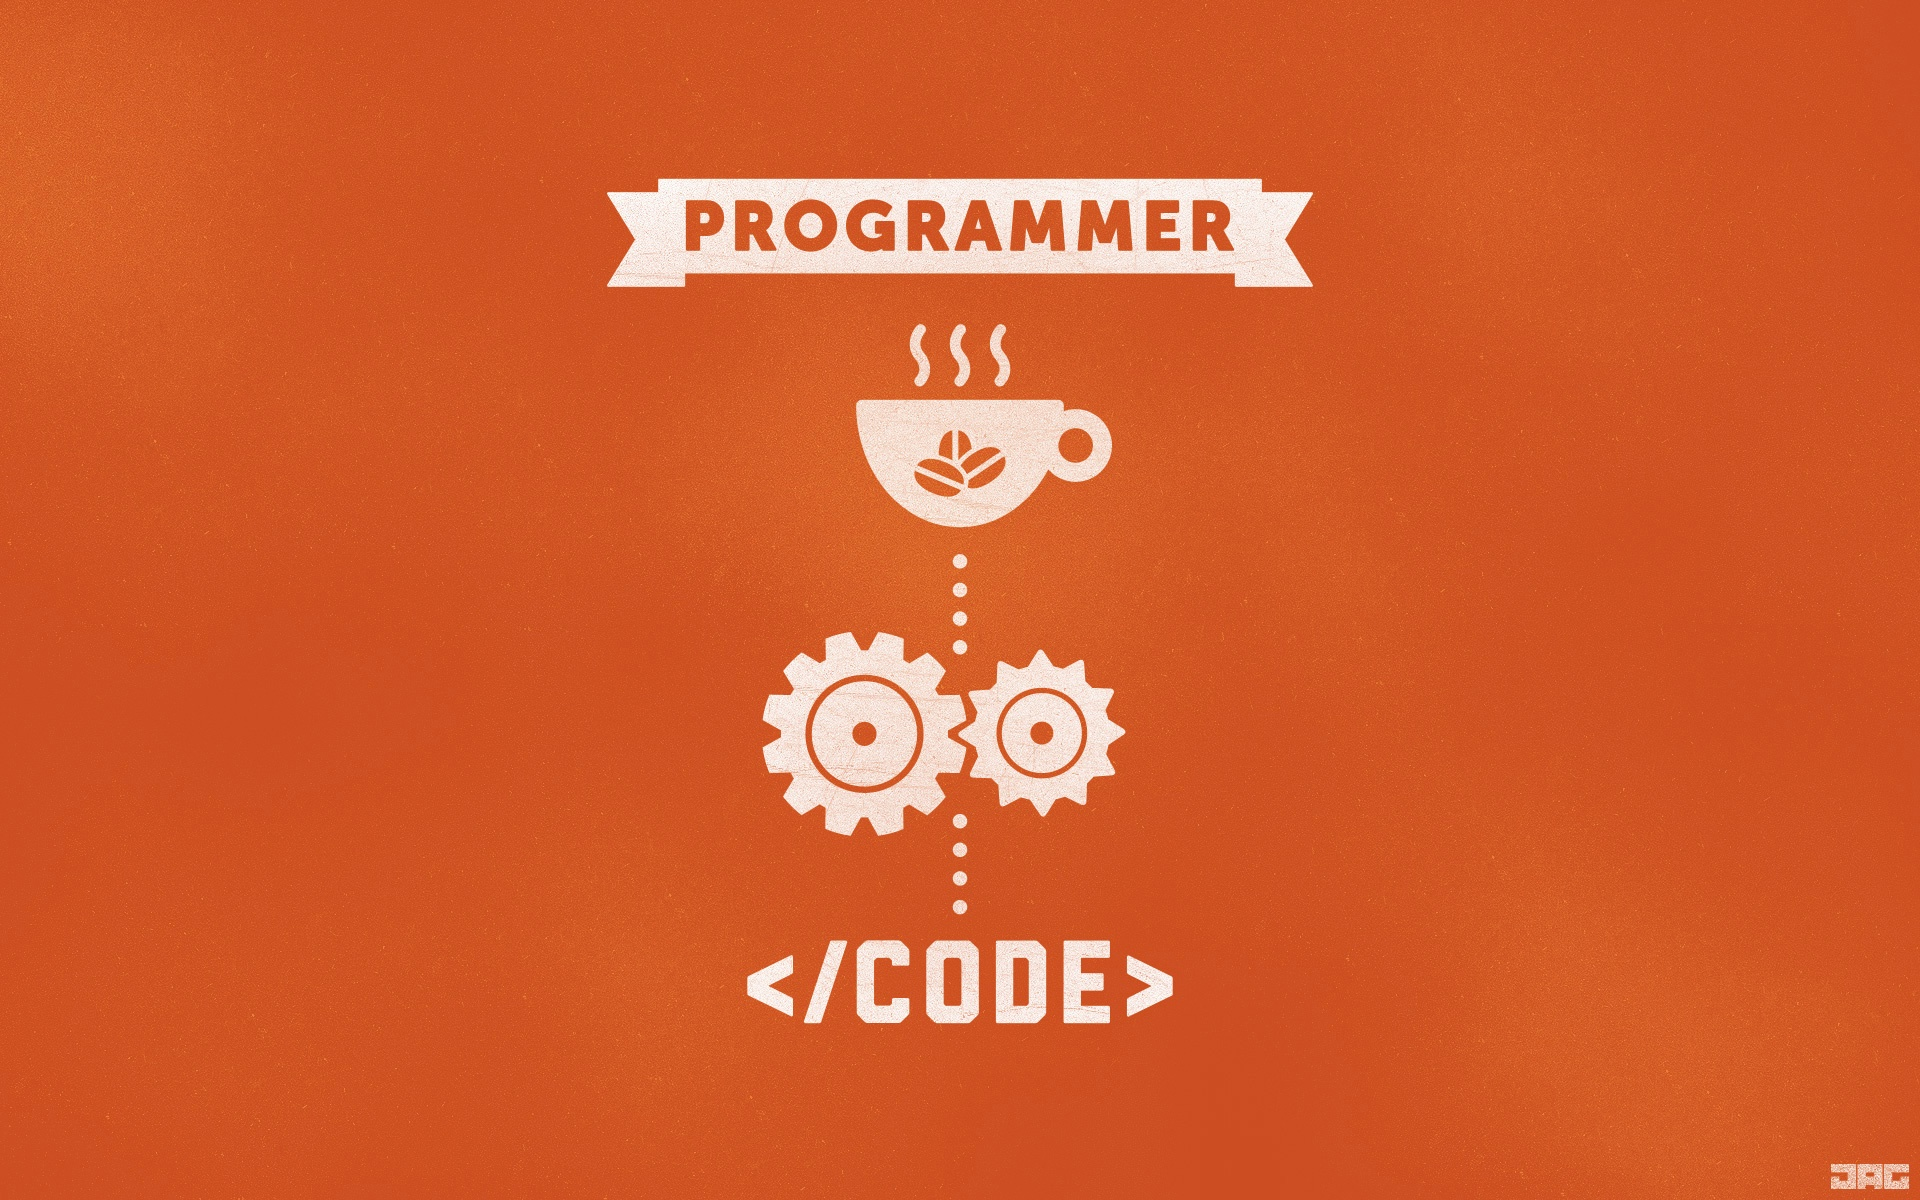 code Learn the technical skills you need for the job you want as leaders in online education and learning to code, we've taught over 45 million people using a tested curriculum and an interactive learning environment.